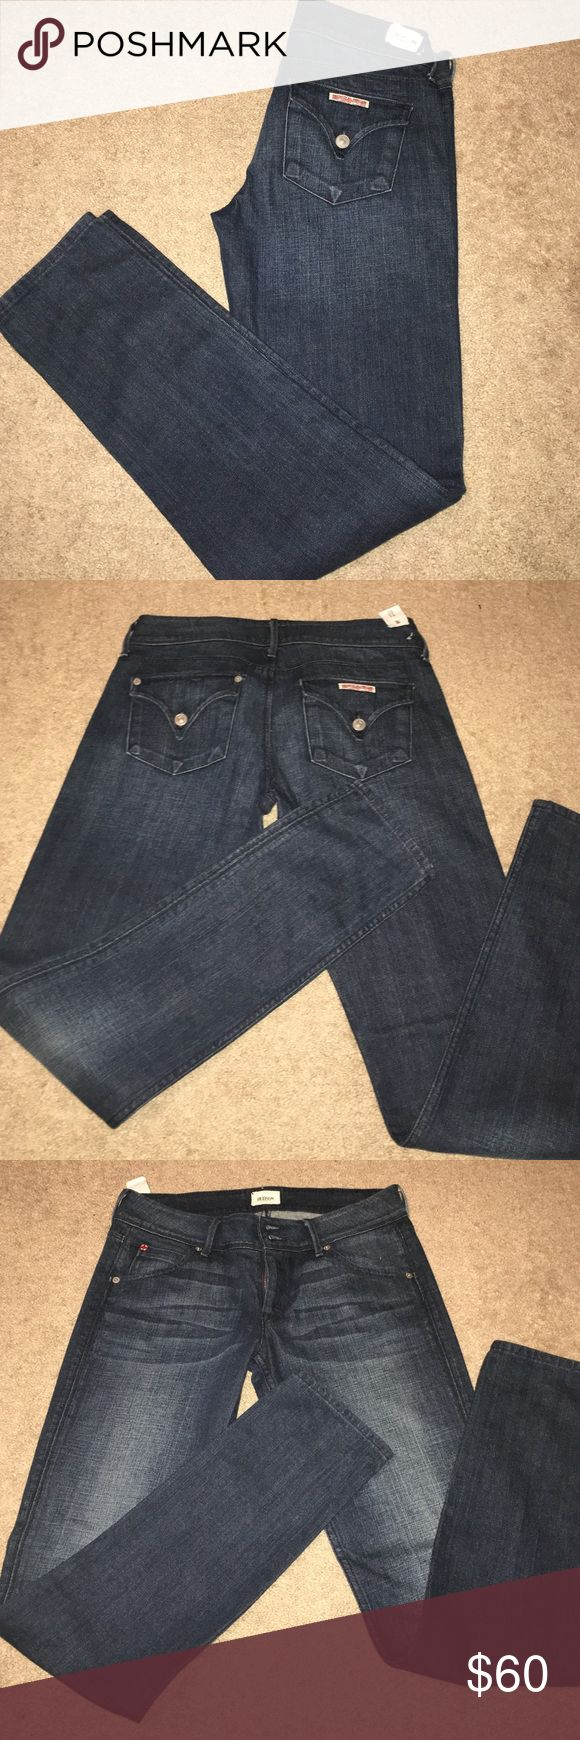 "Hudson Jeans Collin Skinny jeans 28 Hudson Jeans Skinny Collin 12"" leg opening Brand new w/o tags Hudson Jeans Jeans Skinny"